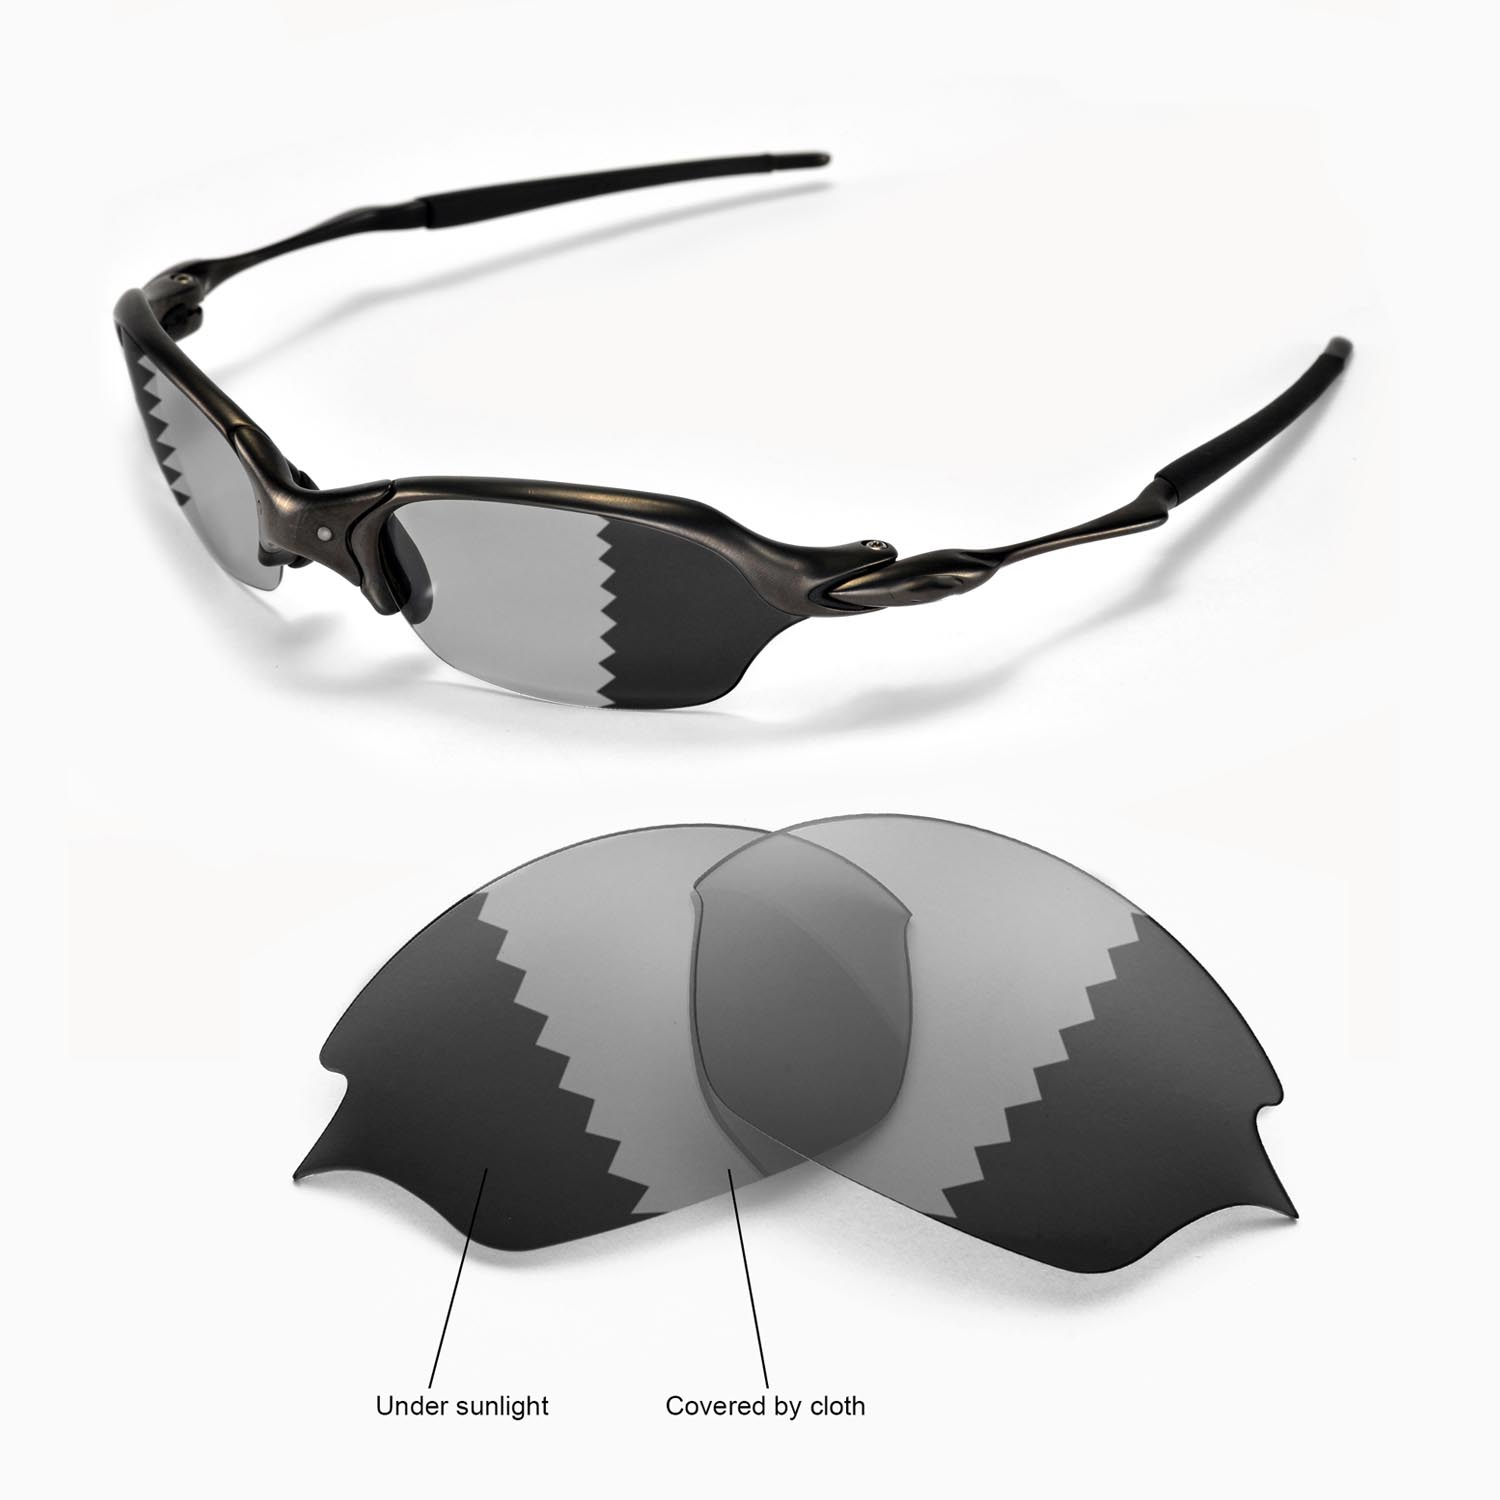 70c4e635ec Details about New Walleva Polarized Transition Photochromic Lenses For  Oakley Romeo 2.0